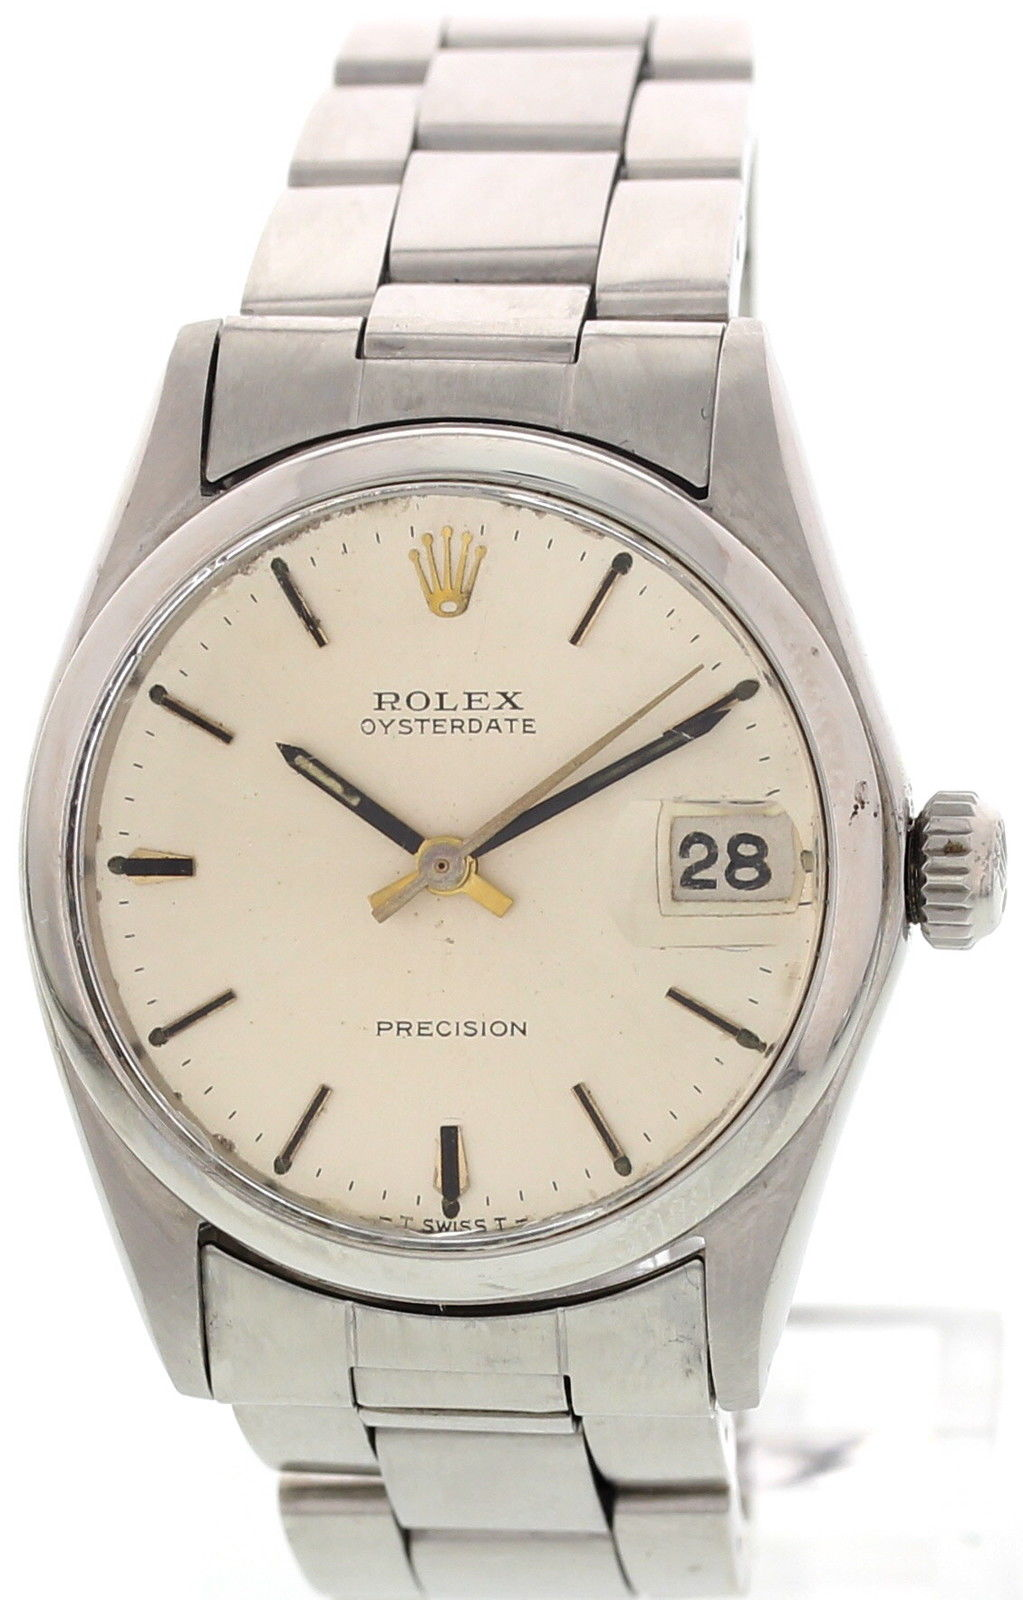 """""Rolex Oysterdate Precision 6466 Stainless Steel 30mm Watch"""""" 786900"